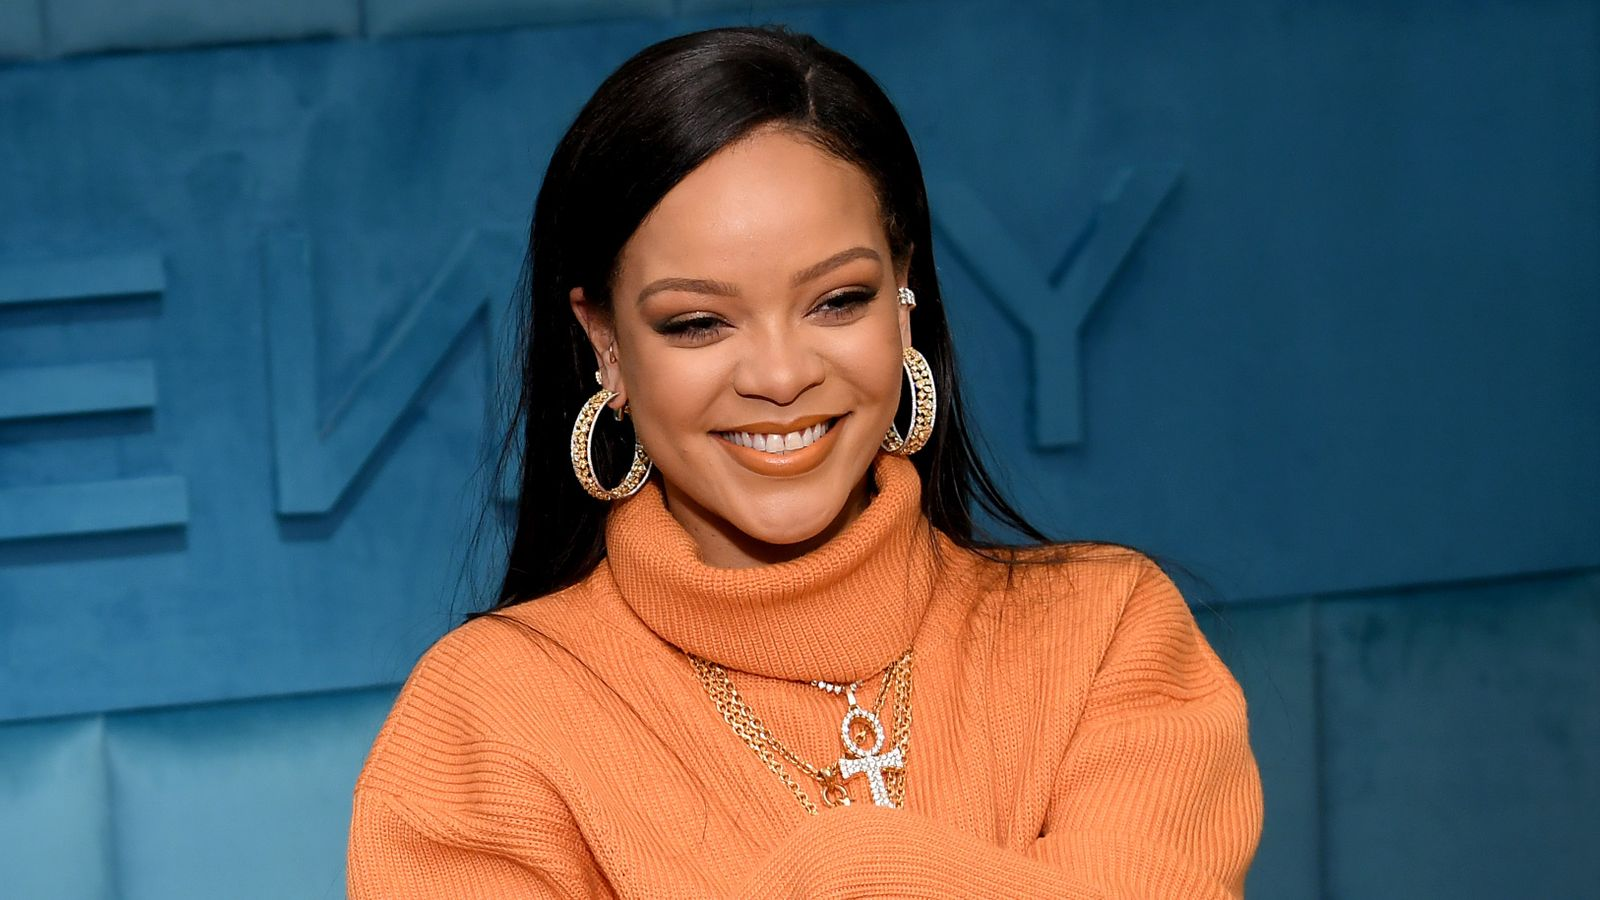 Rihanna was injured in an electric motorcycle accident | Ents & Arts News